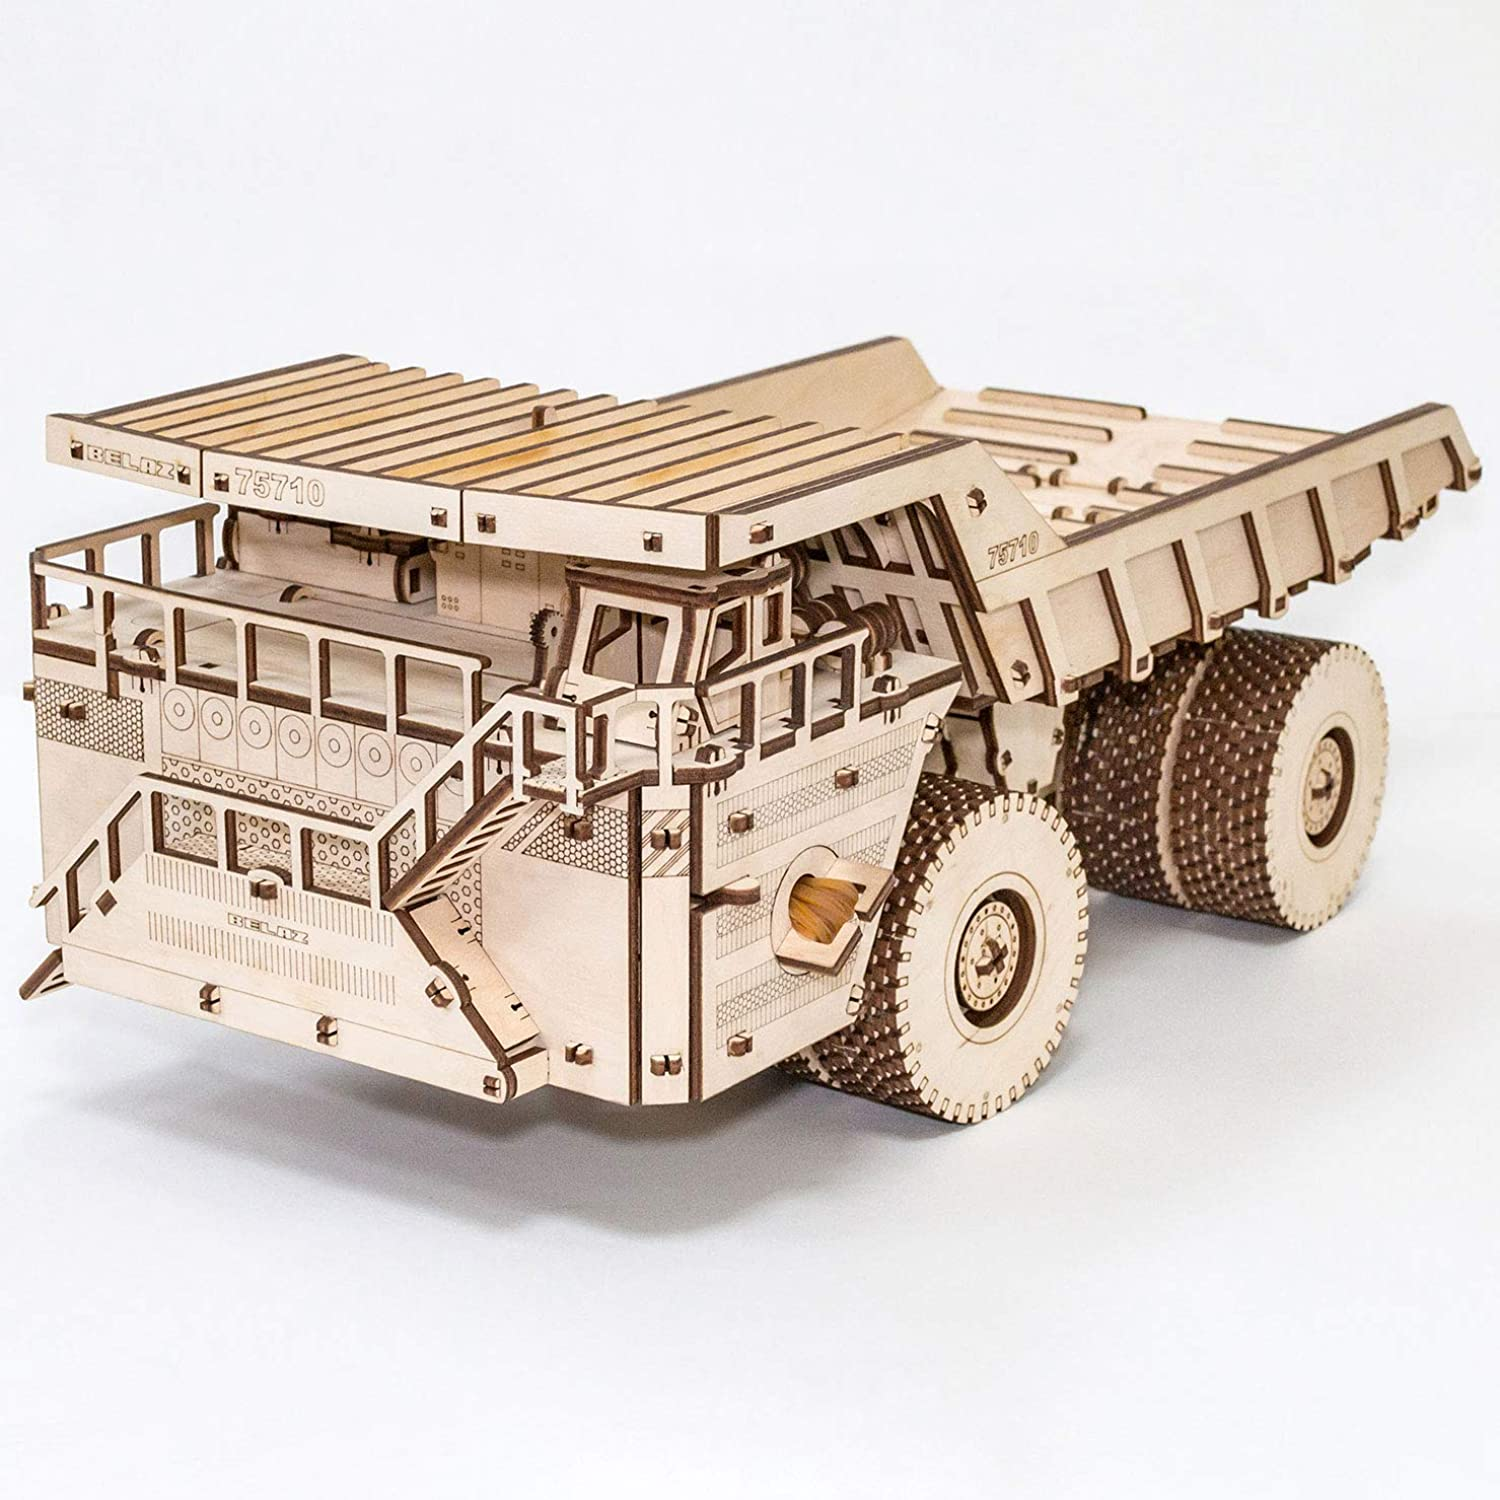 EWA Mechanical 3Dpuzzle of the biggest heavy truck in the world – BELAZ 75710. Assembled model size  435210175 mm Package size  37524362 mm Number of details  453 Assembling without glue